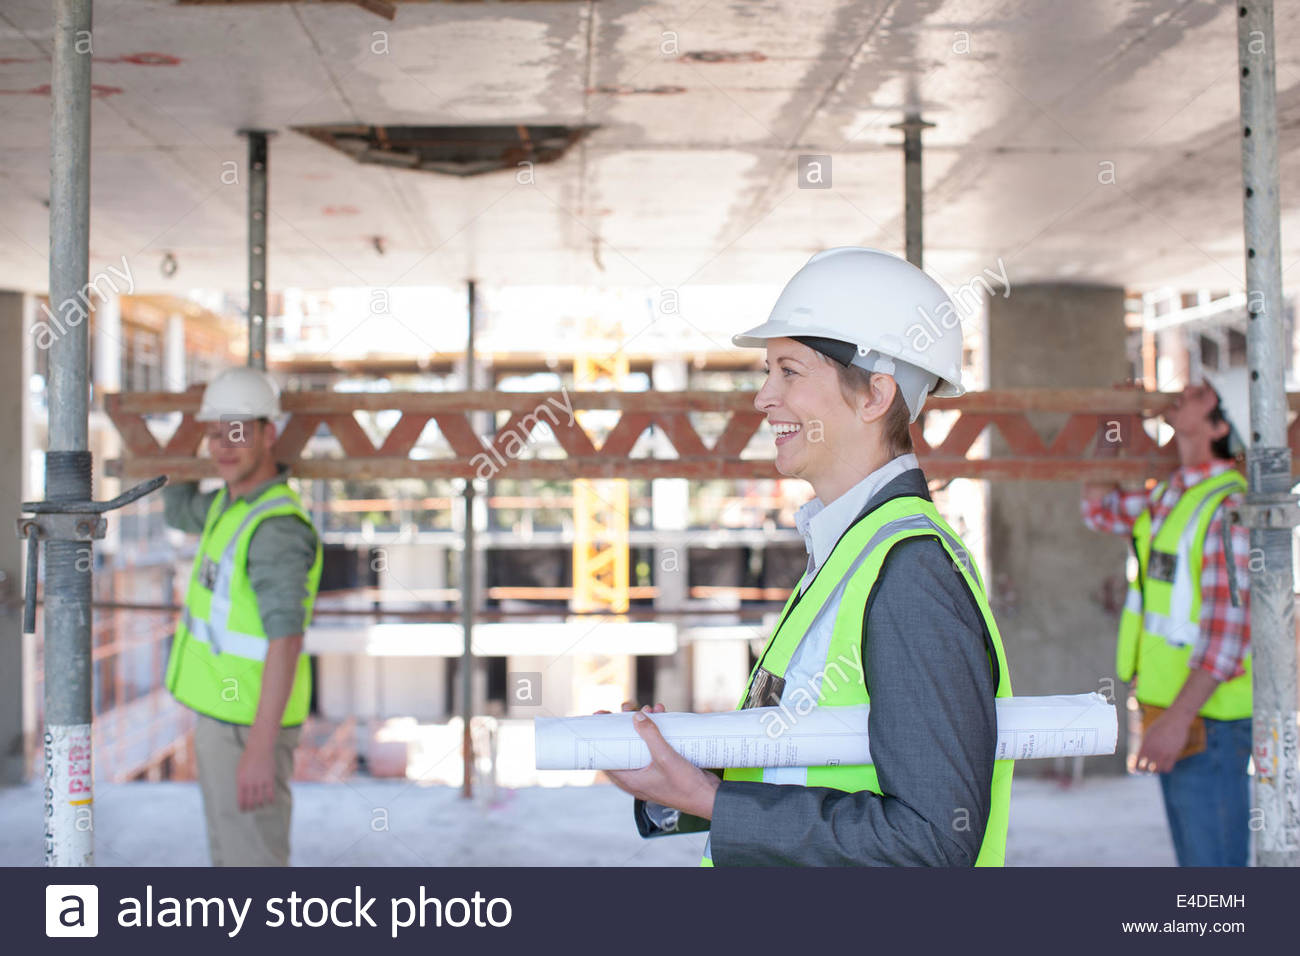 Construction Worker carrying blueprints on construction site Photo Stock